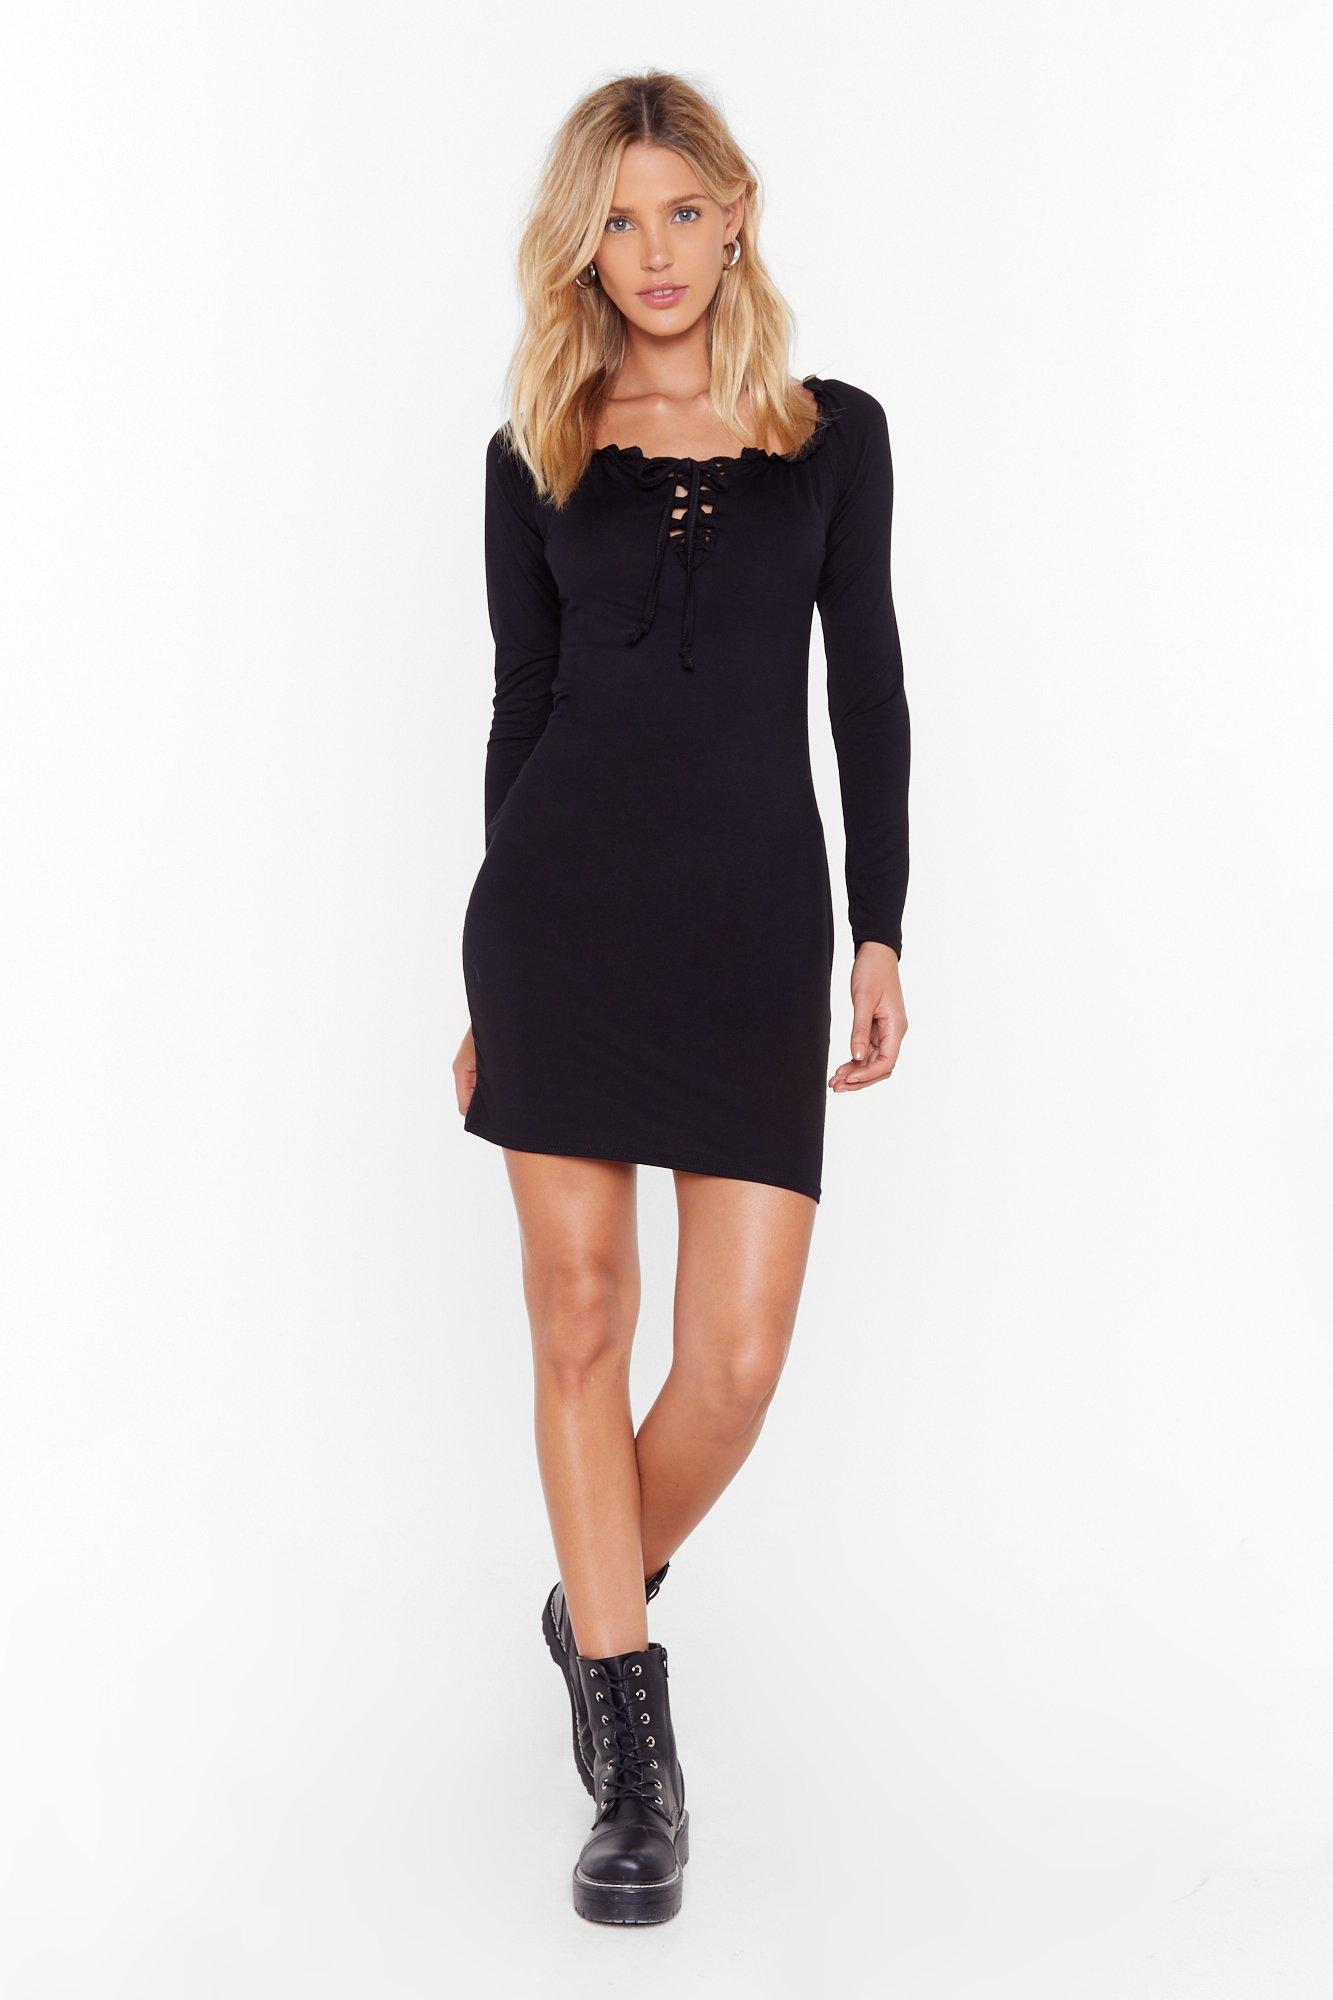 Image of Call Fit Quits Lace-Up Mini Dress